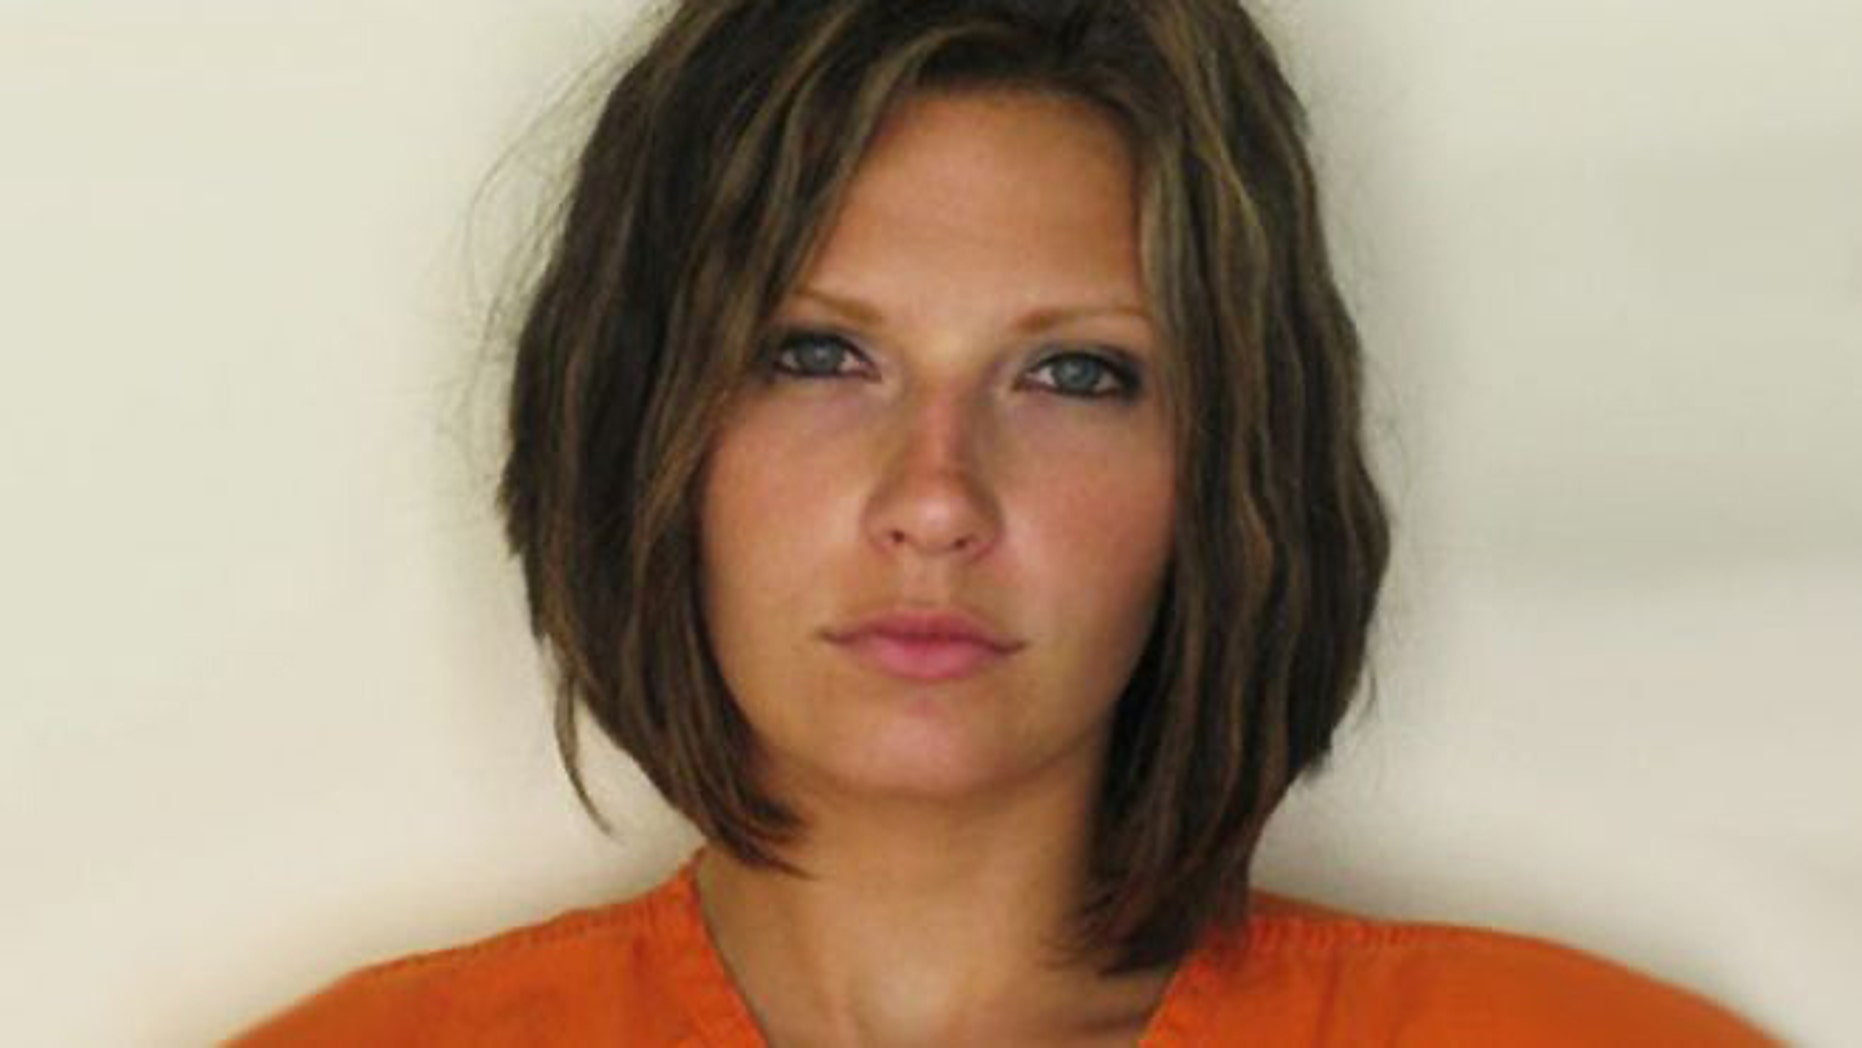 Meagan Simmons in 2010 following her arrest for drinking and driving.